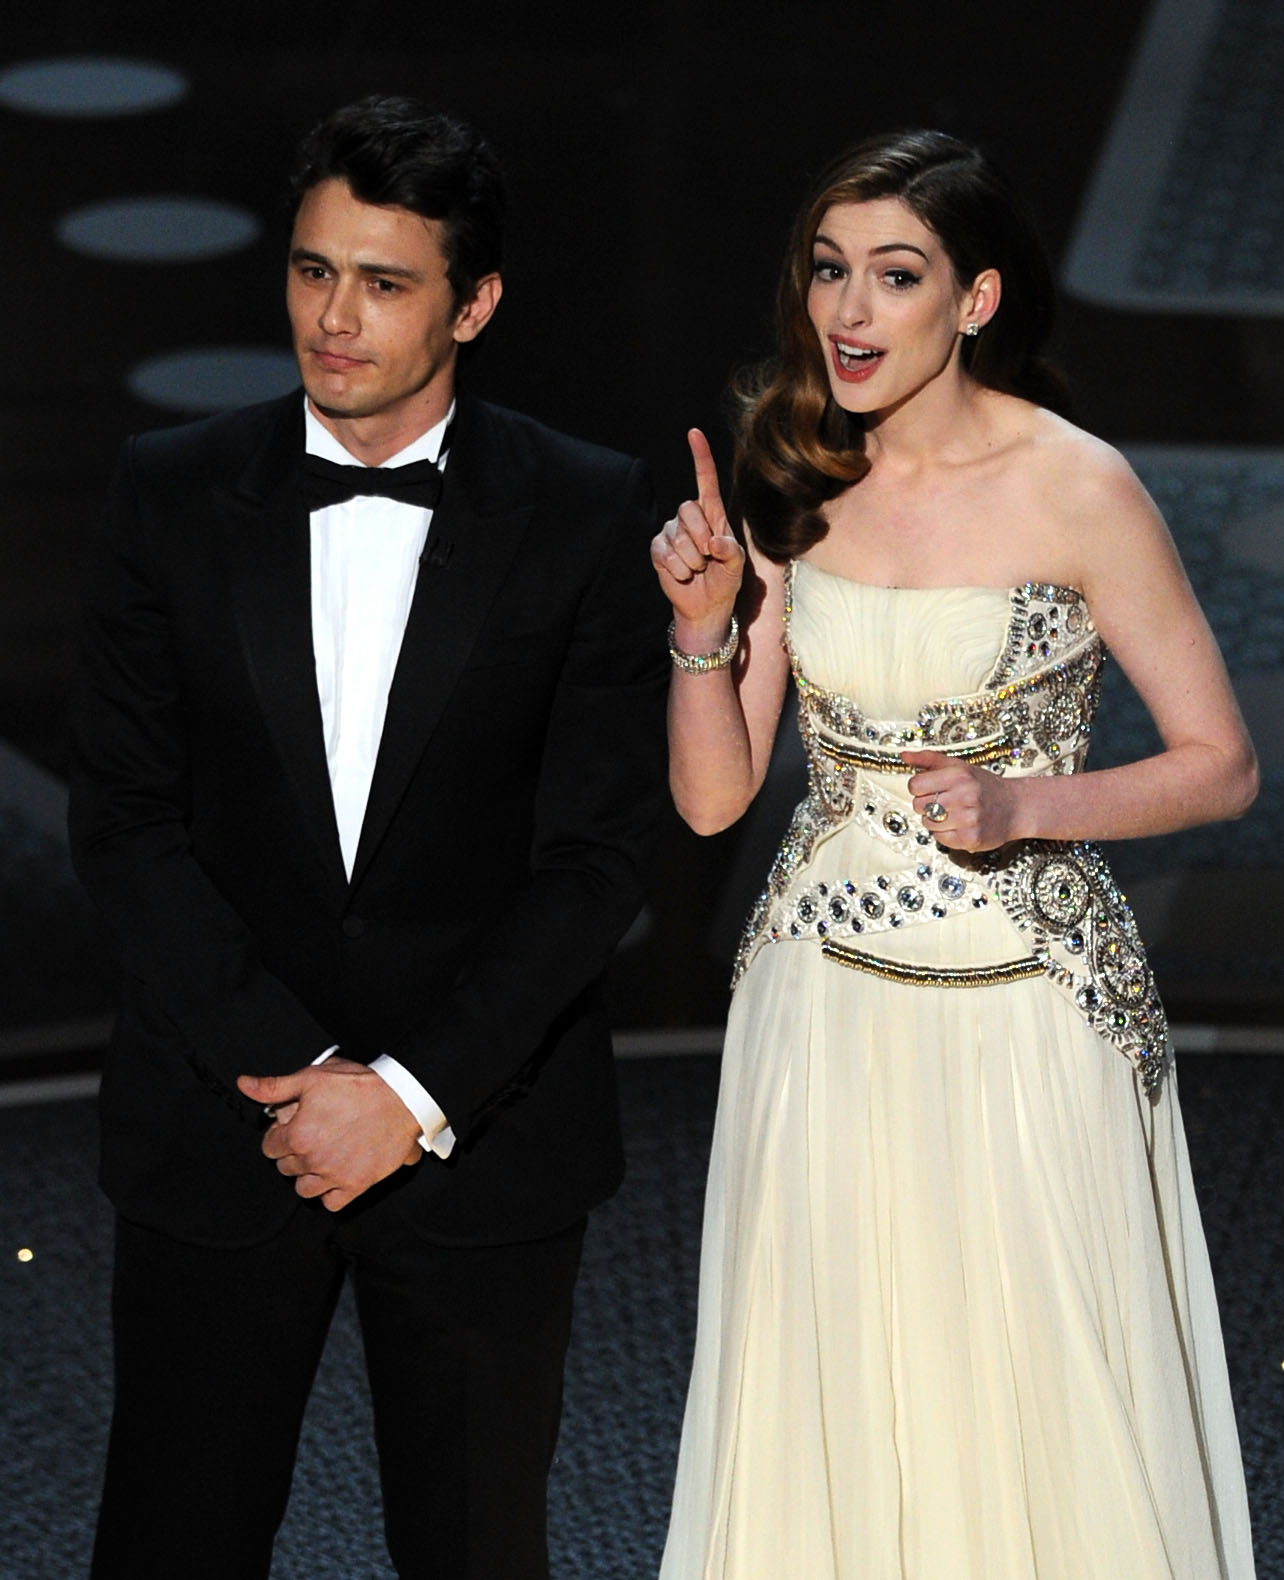 Hosts James Franco and Anne Hathaway speak onstage during the 83rd Annual Academy Awards held at the Kodak Theatre on February 27, 2011 in Hollywood, California.